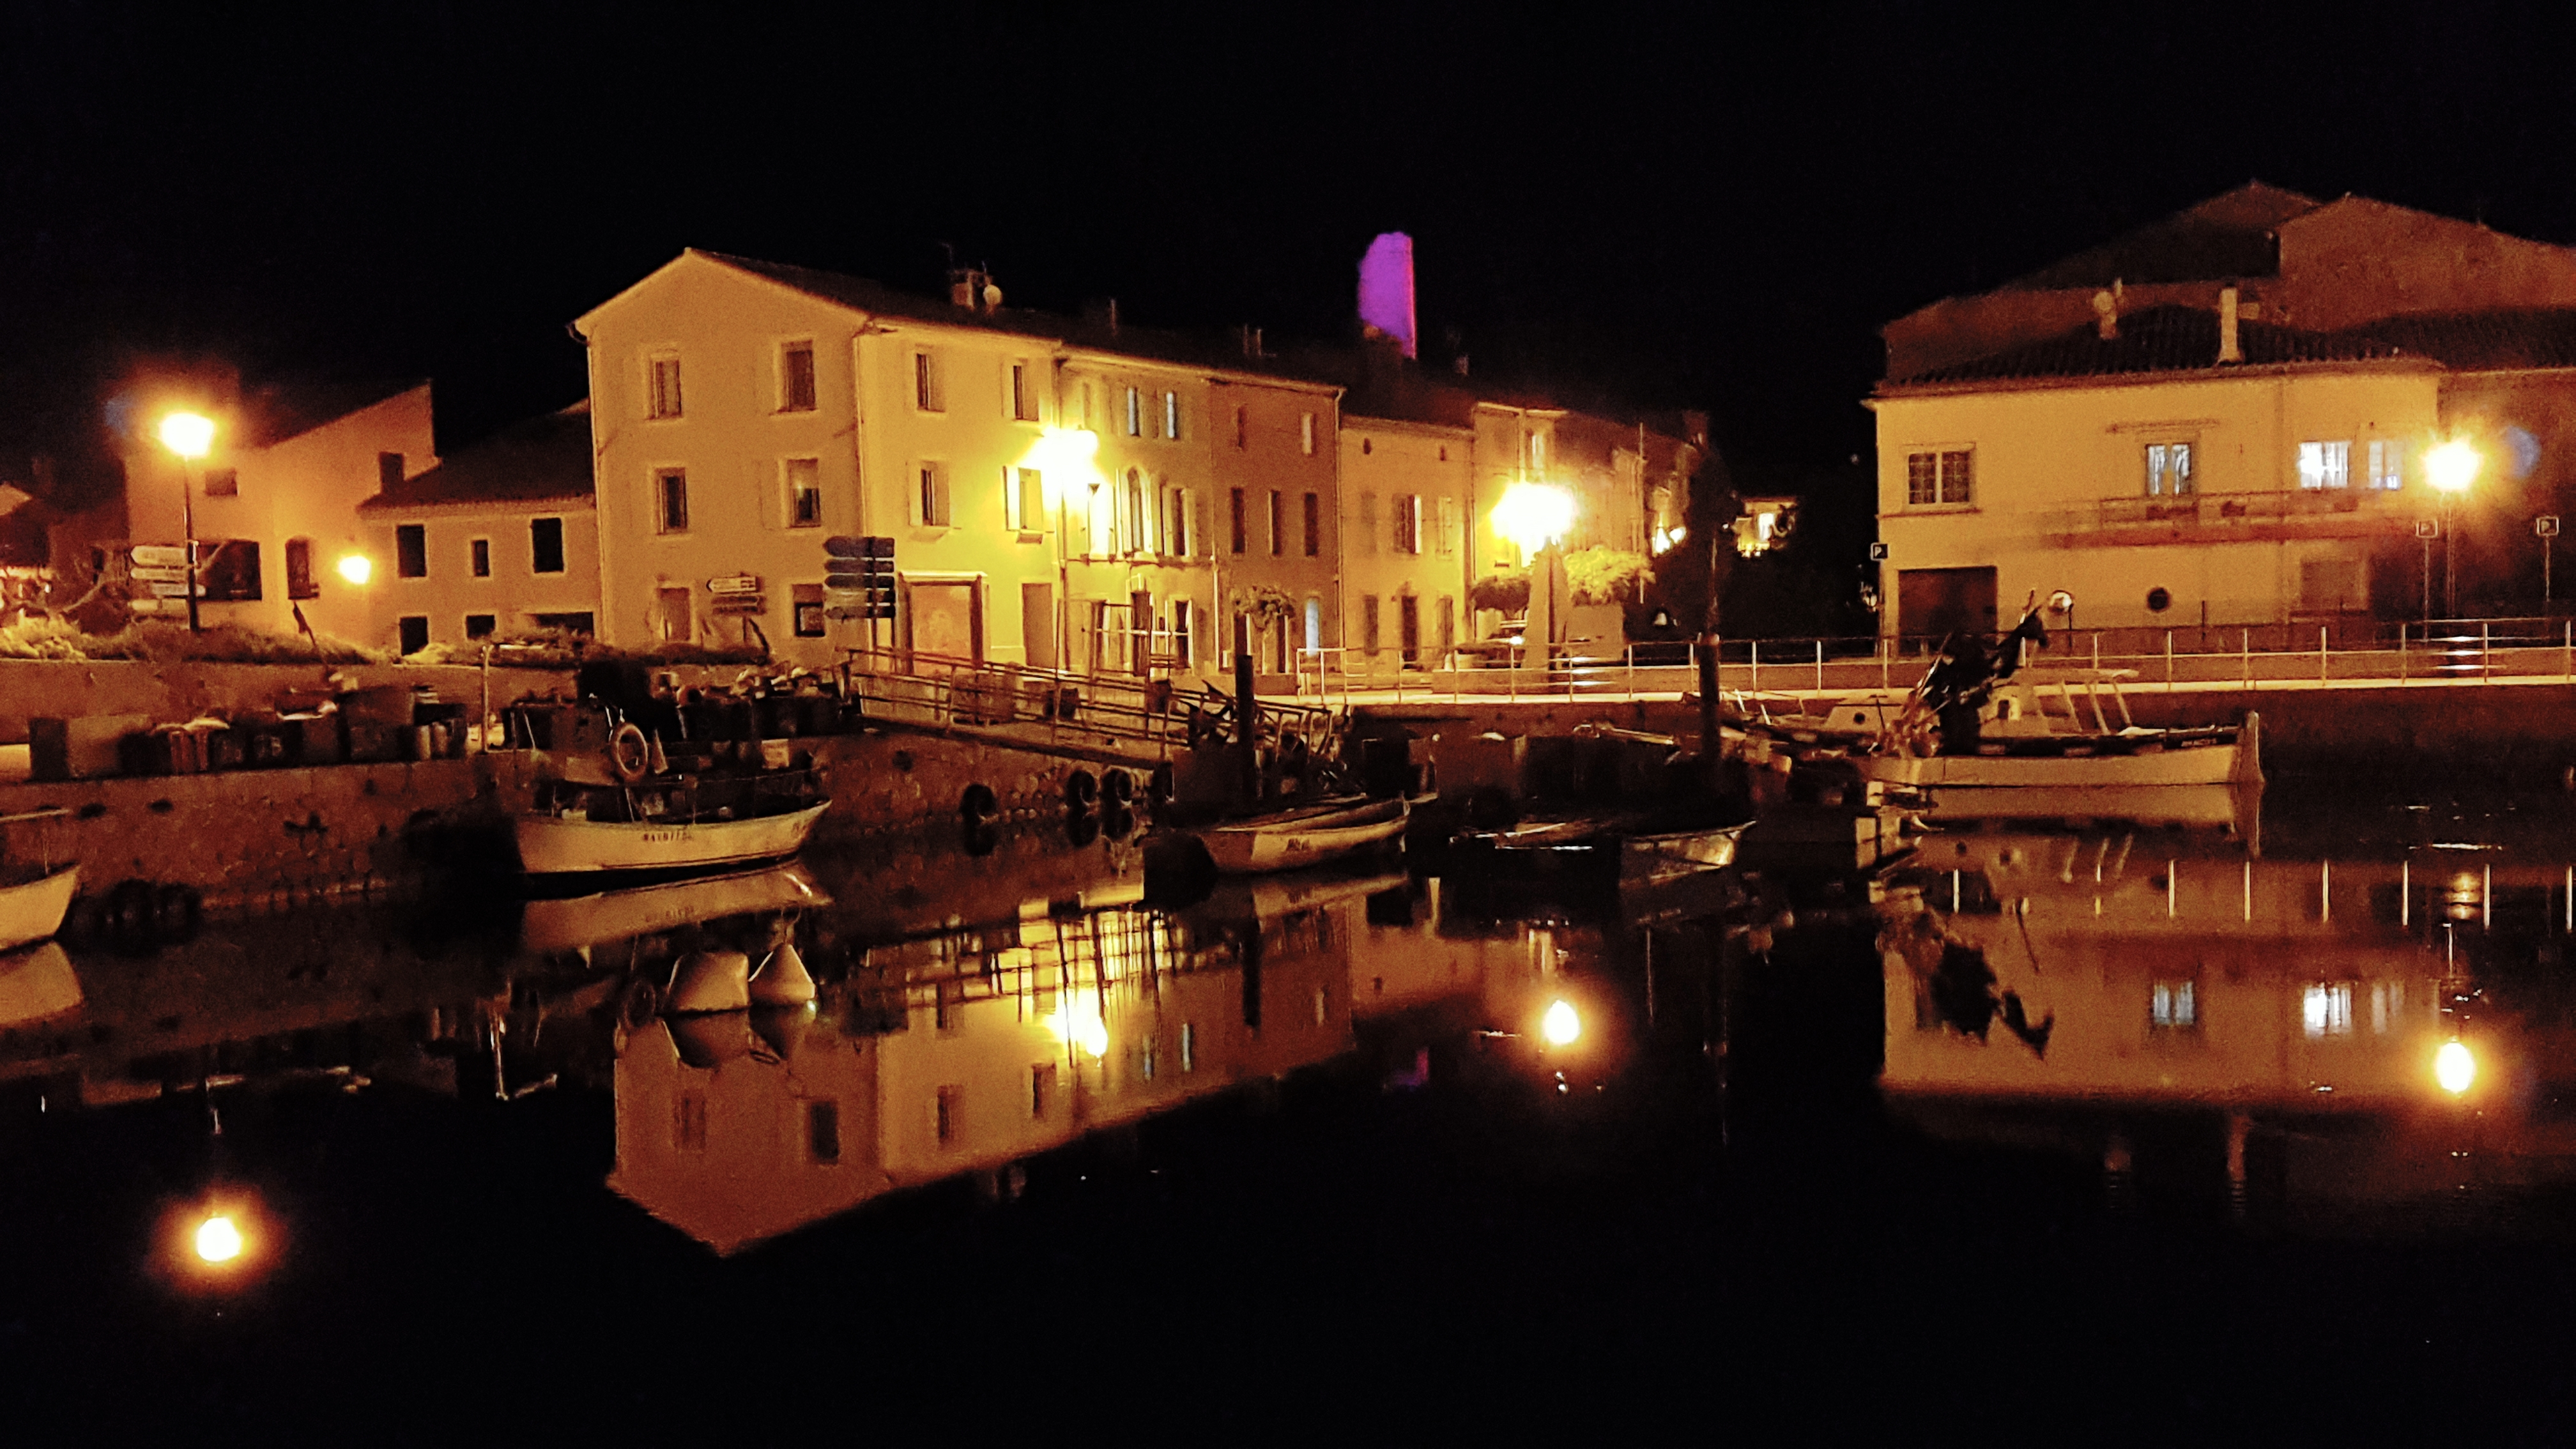 Gruissan by night